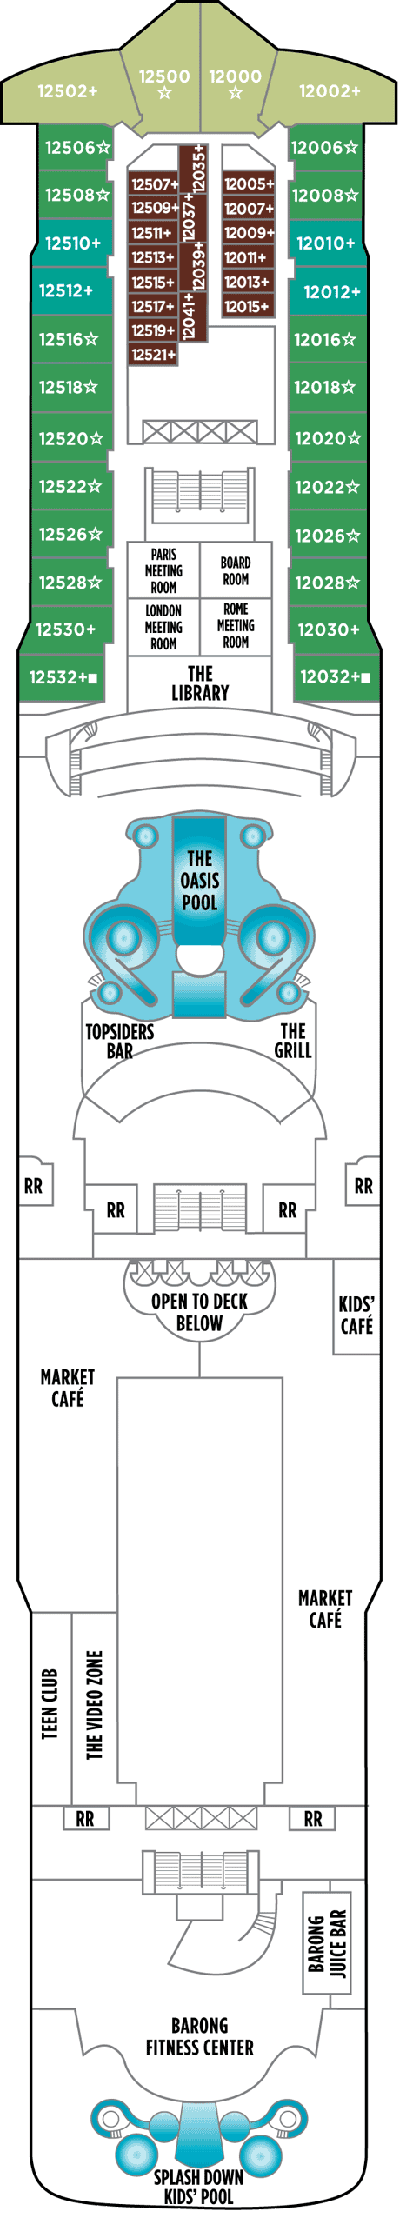 Norwegian Star Deck 12 layout